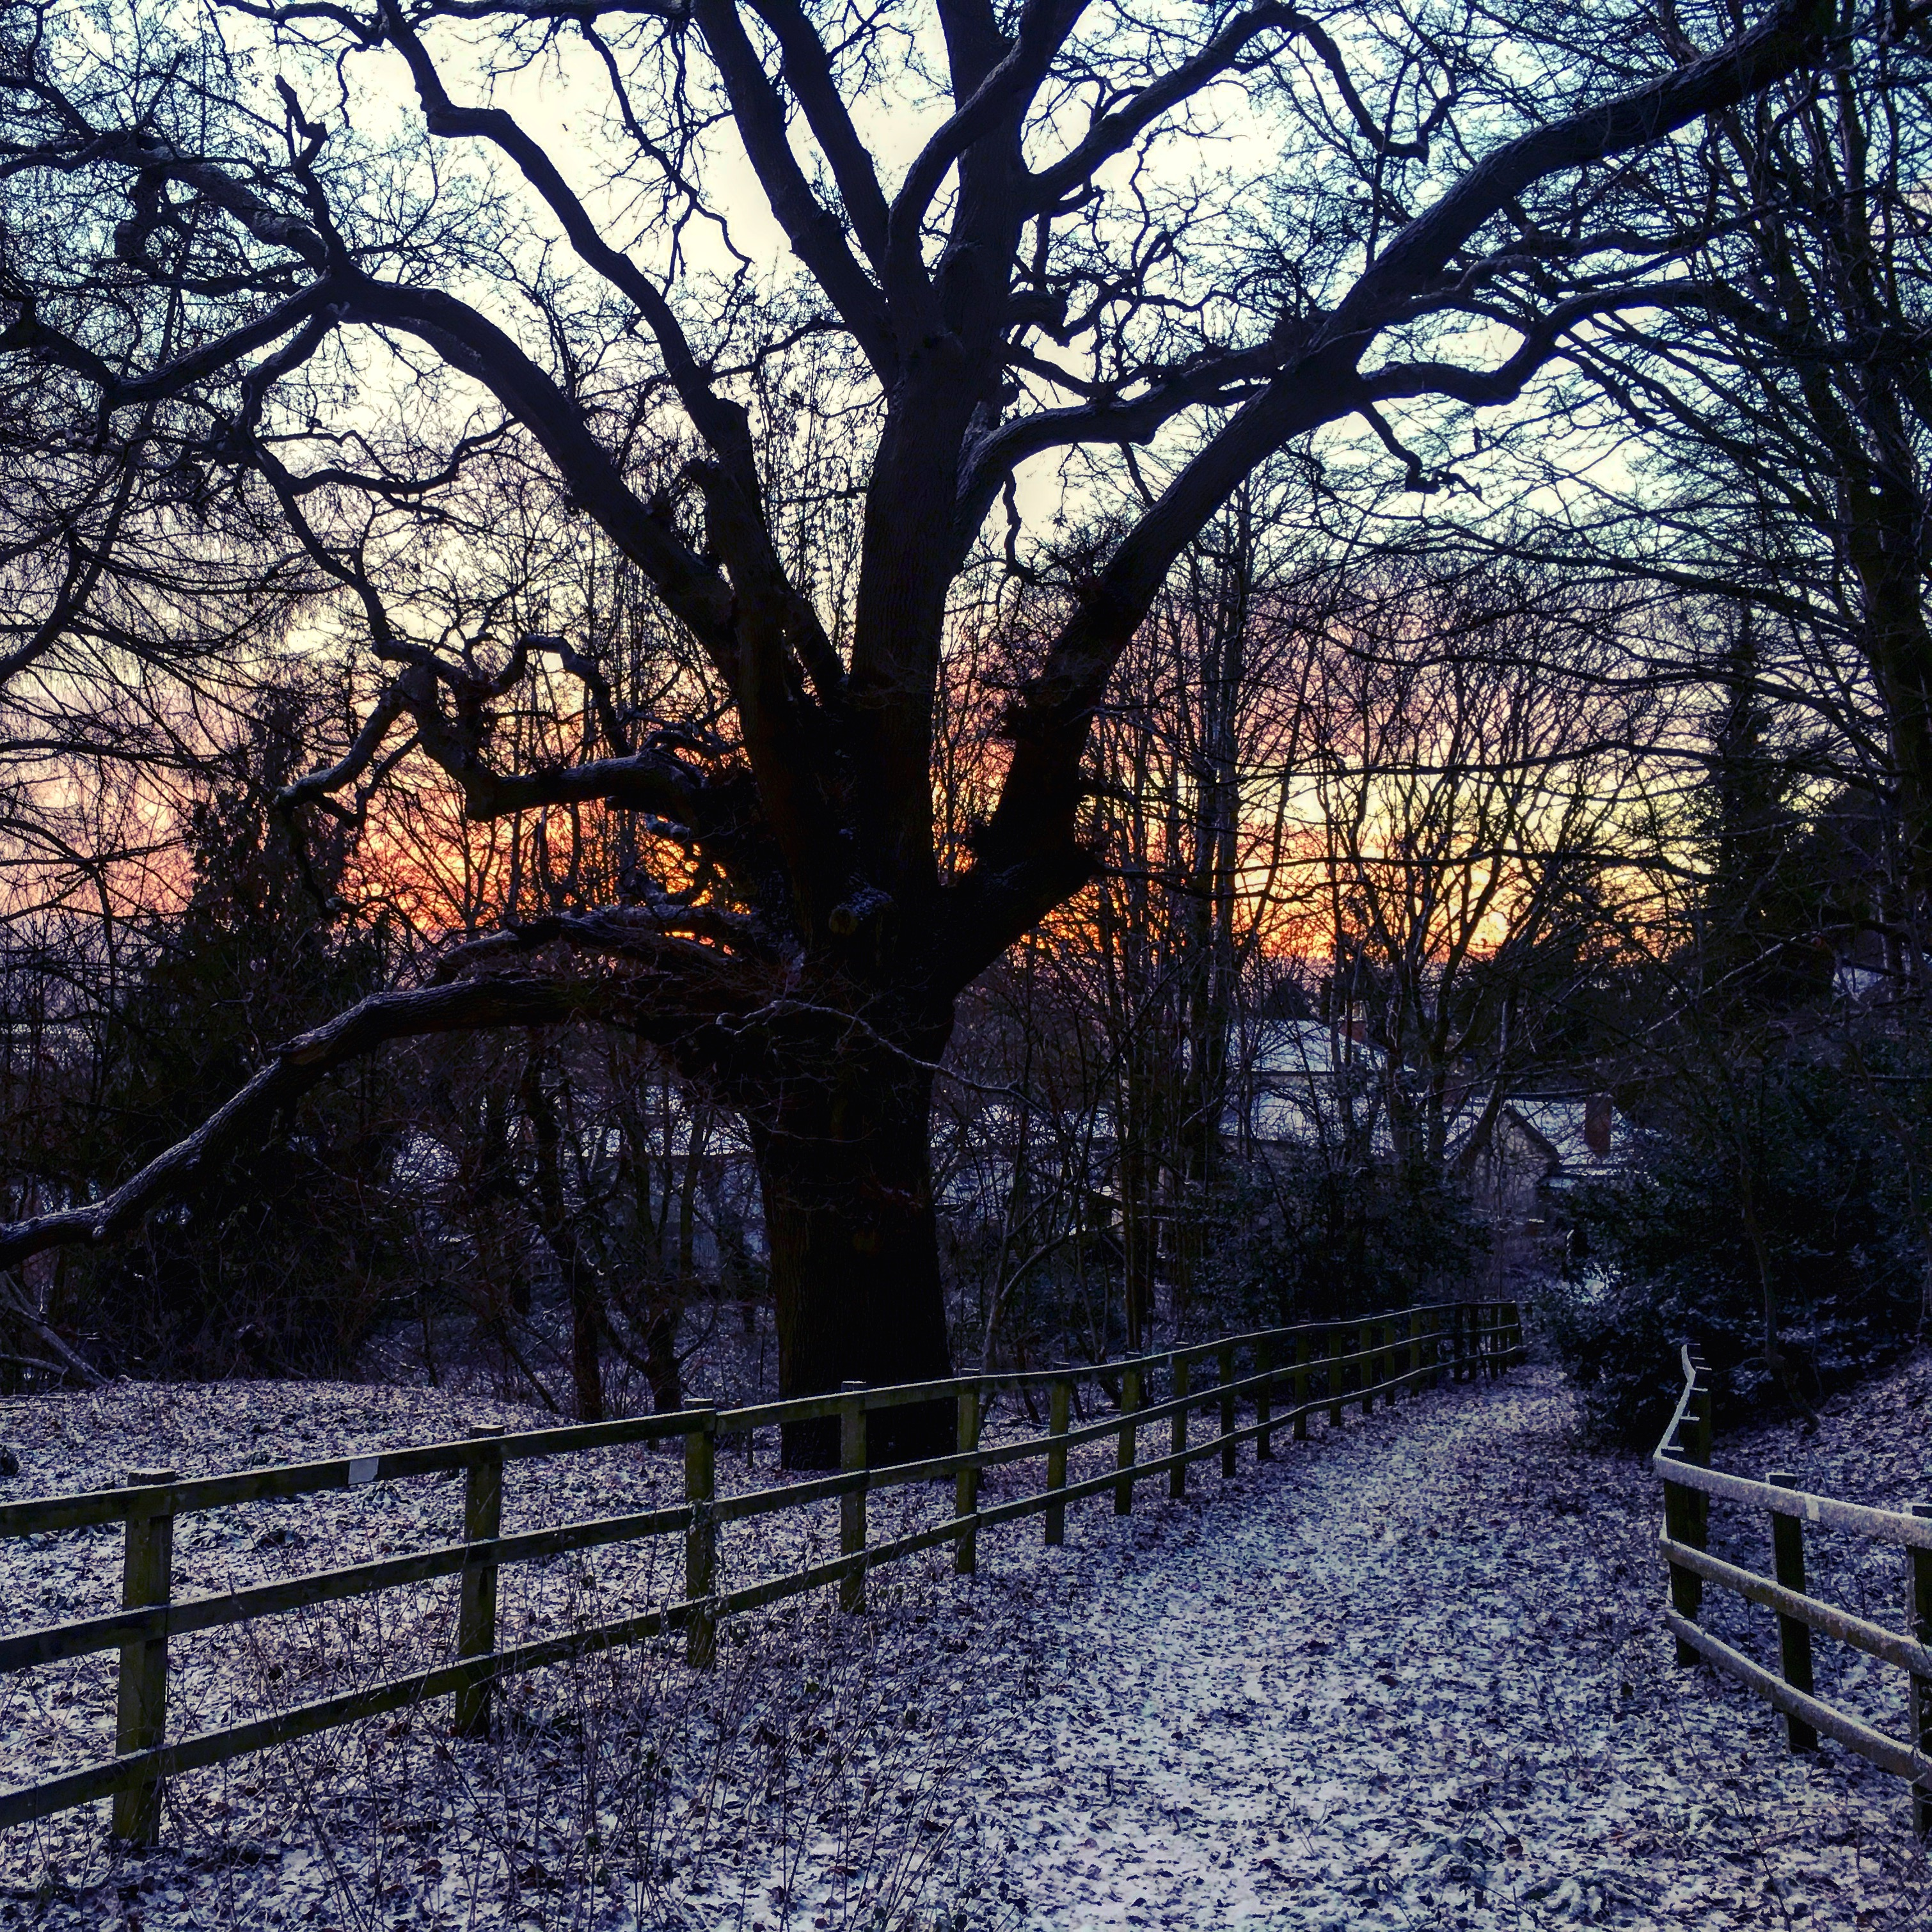 A snowy path in a park with a pink and orange sunrise silhouetting a large tree.